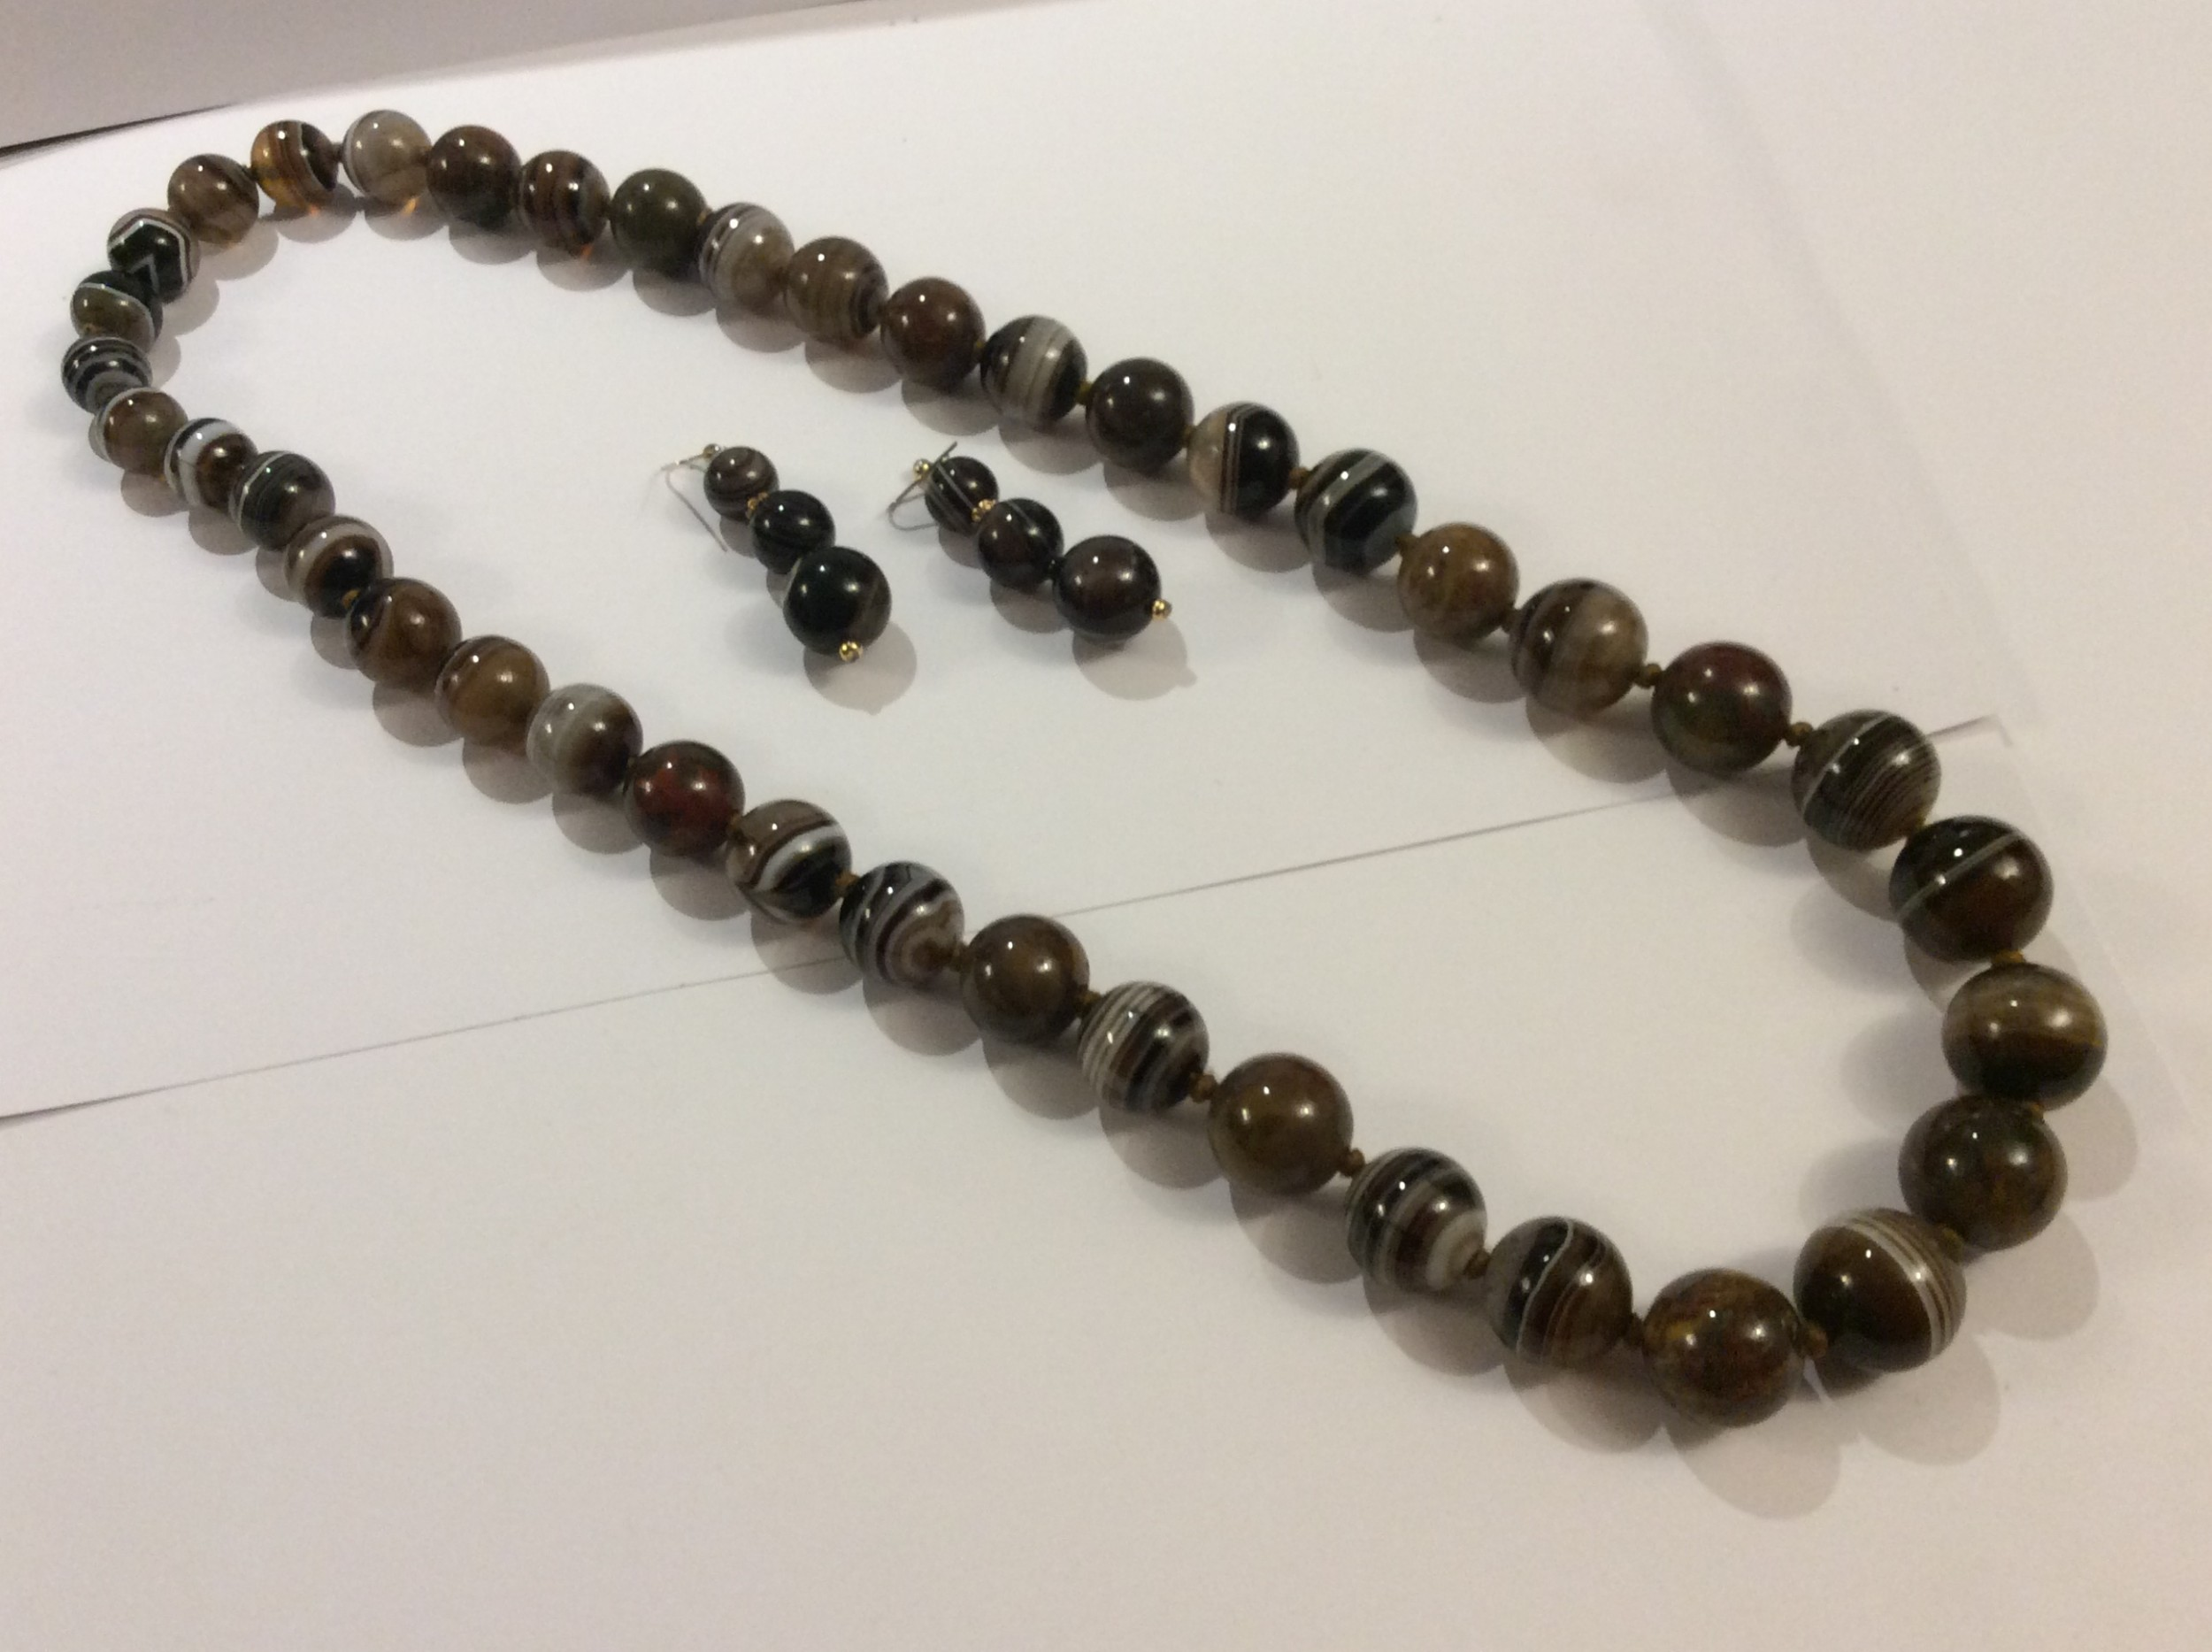 scottish banded agate necklace with matching earrings